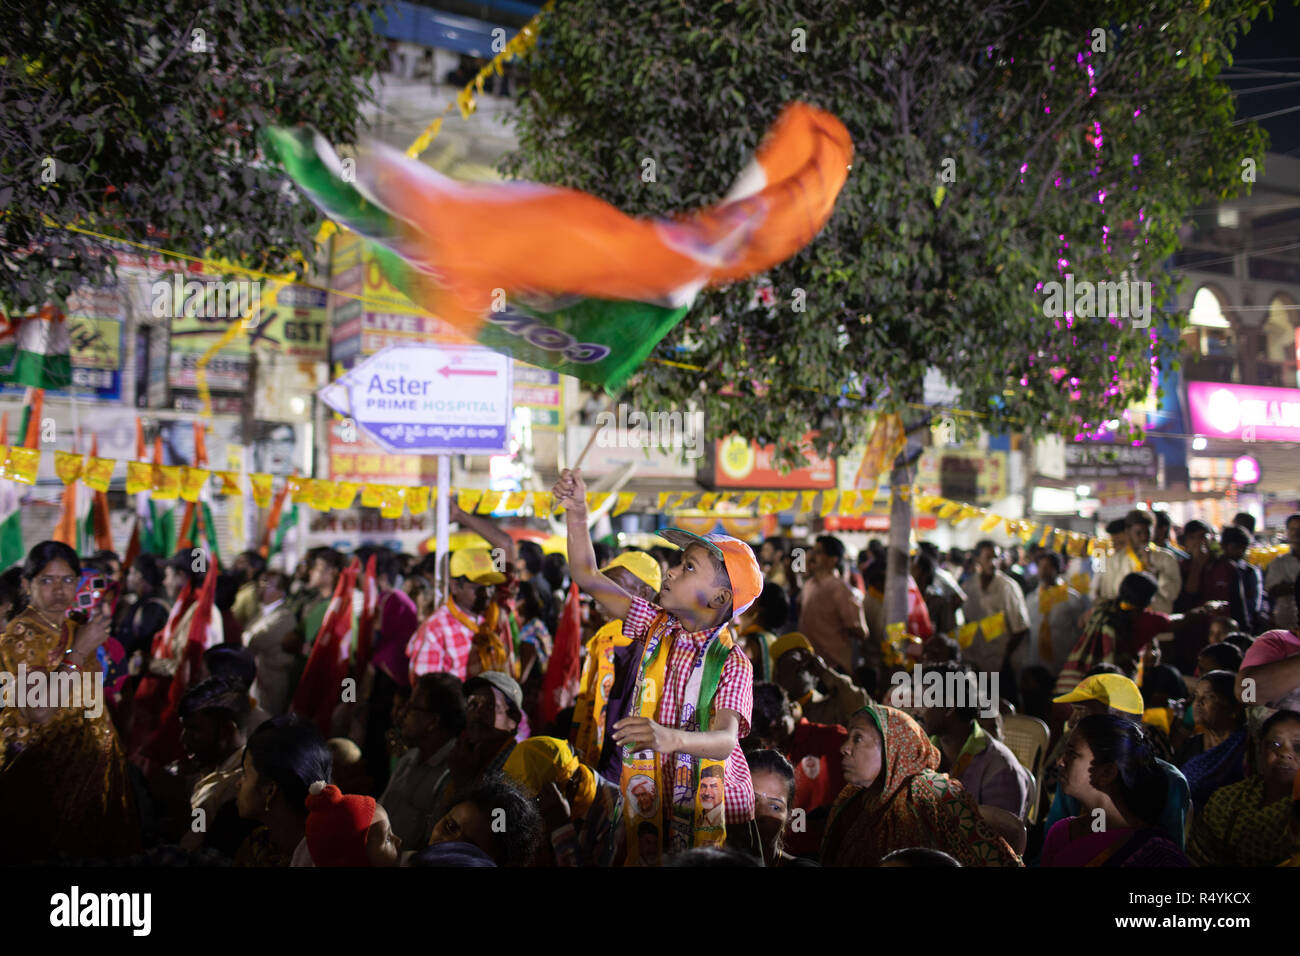 Hyderabad,India.28th November,2018. A young boy waves party flag of Indian National Congress  during a road show of Andhra Pradesh Chief Minister N Chandrababu Naidu and Congress President Rahul Gandhi in Hyderabad,India for the forthcoming Telangana Legislative Assembly elections to be held on 07 December,2018.Credit: Sanjay Borra/Alamy Live News - Stock Image